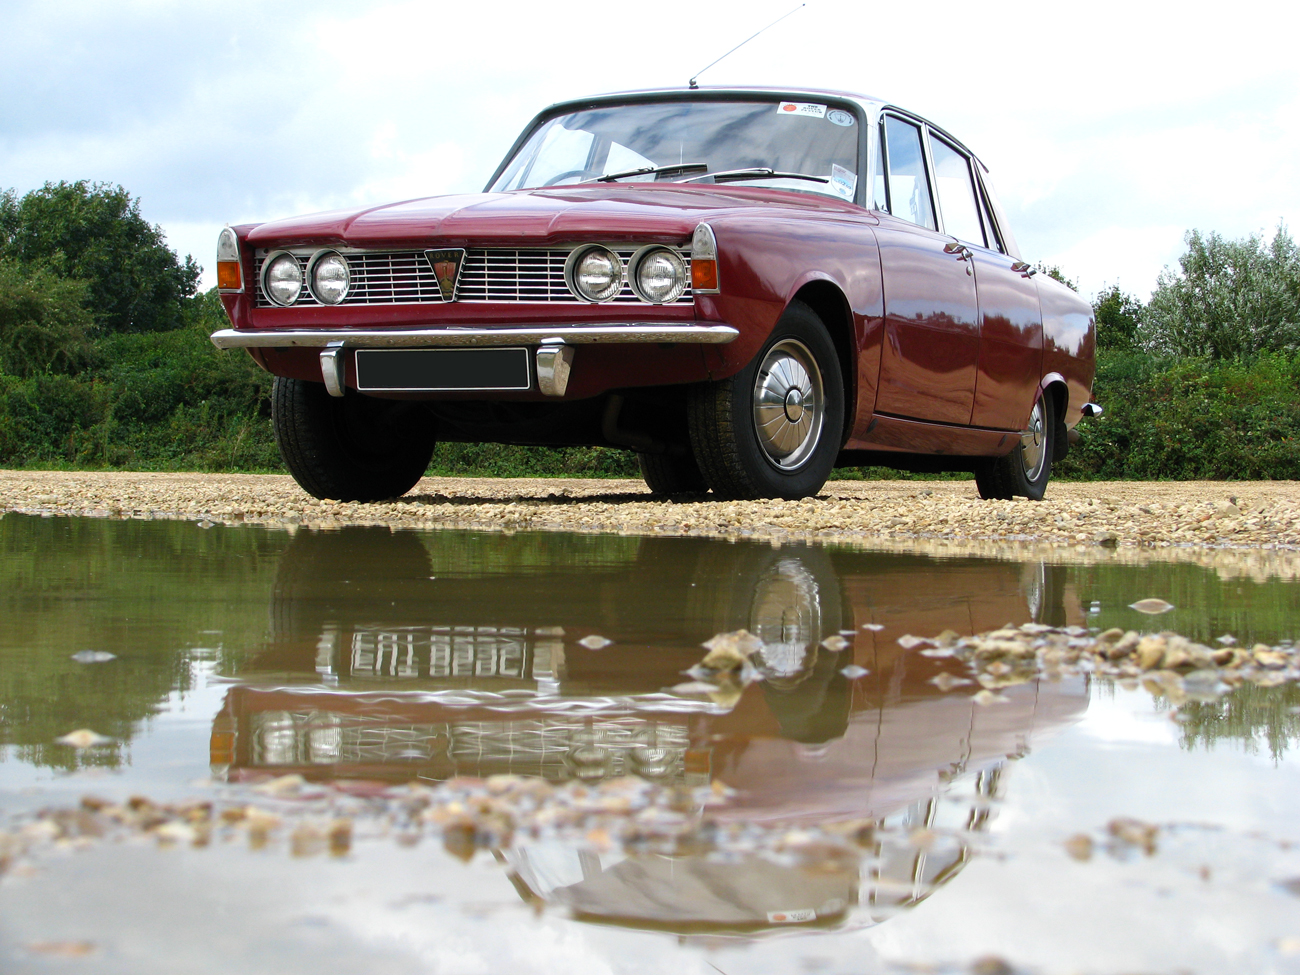 A Rover P6 2000 parked in-front of a large puddle